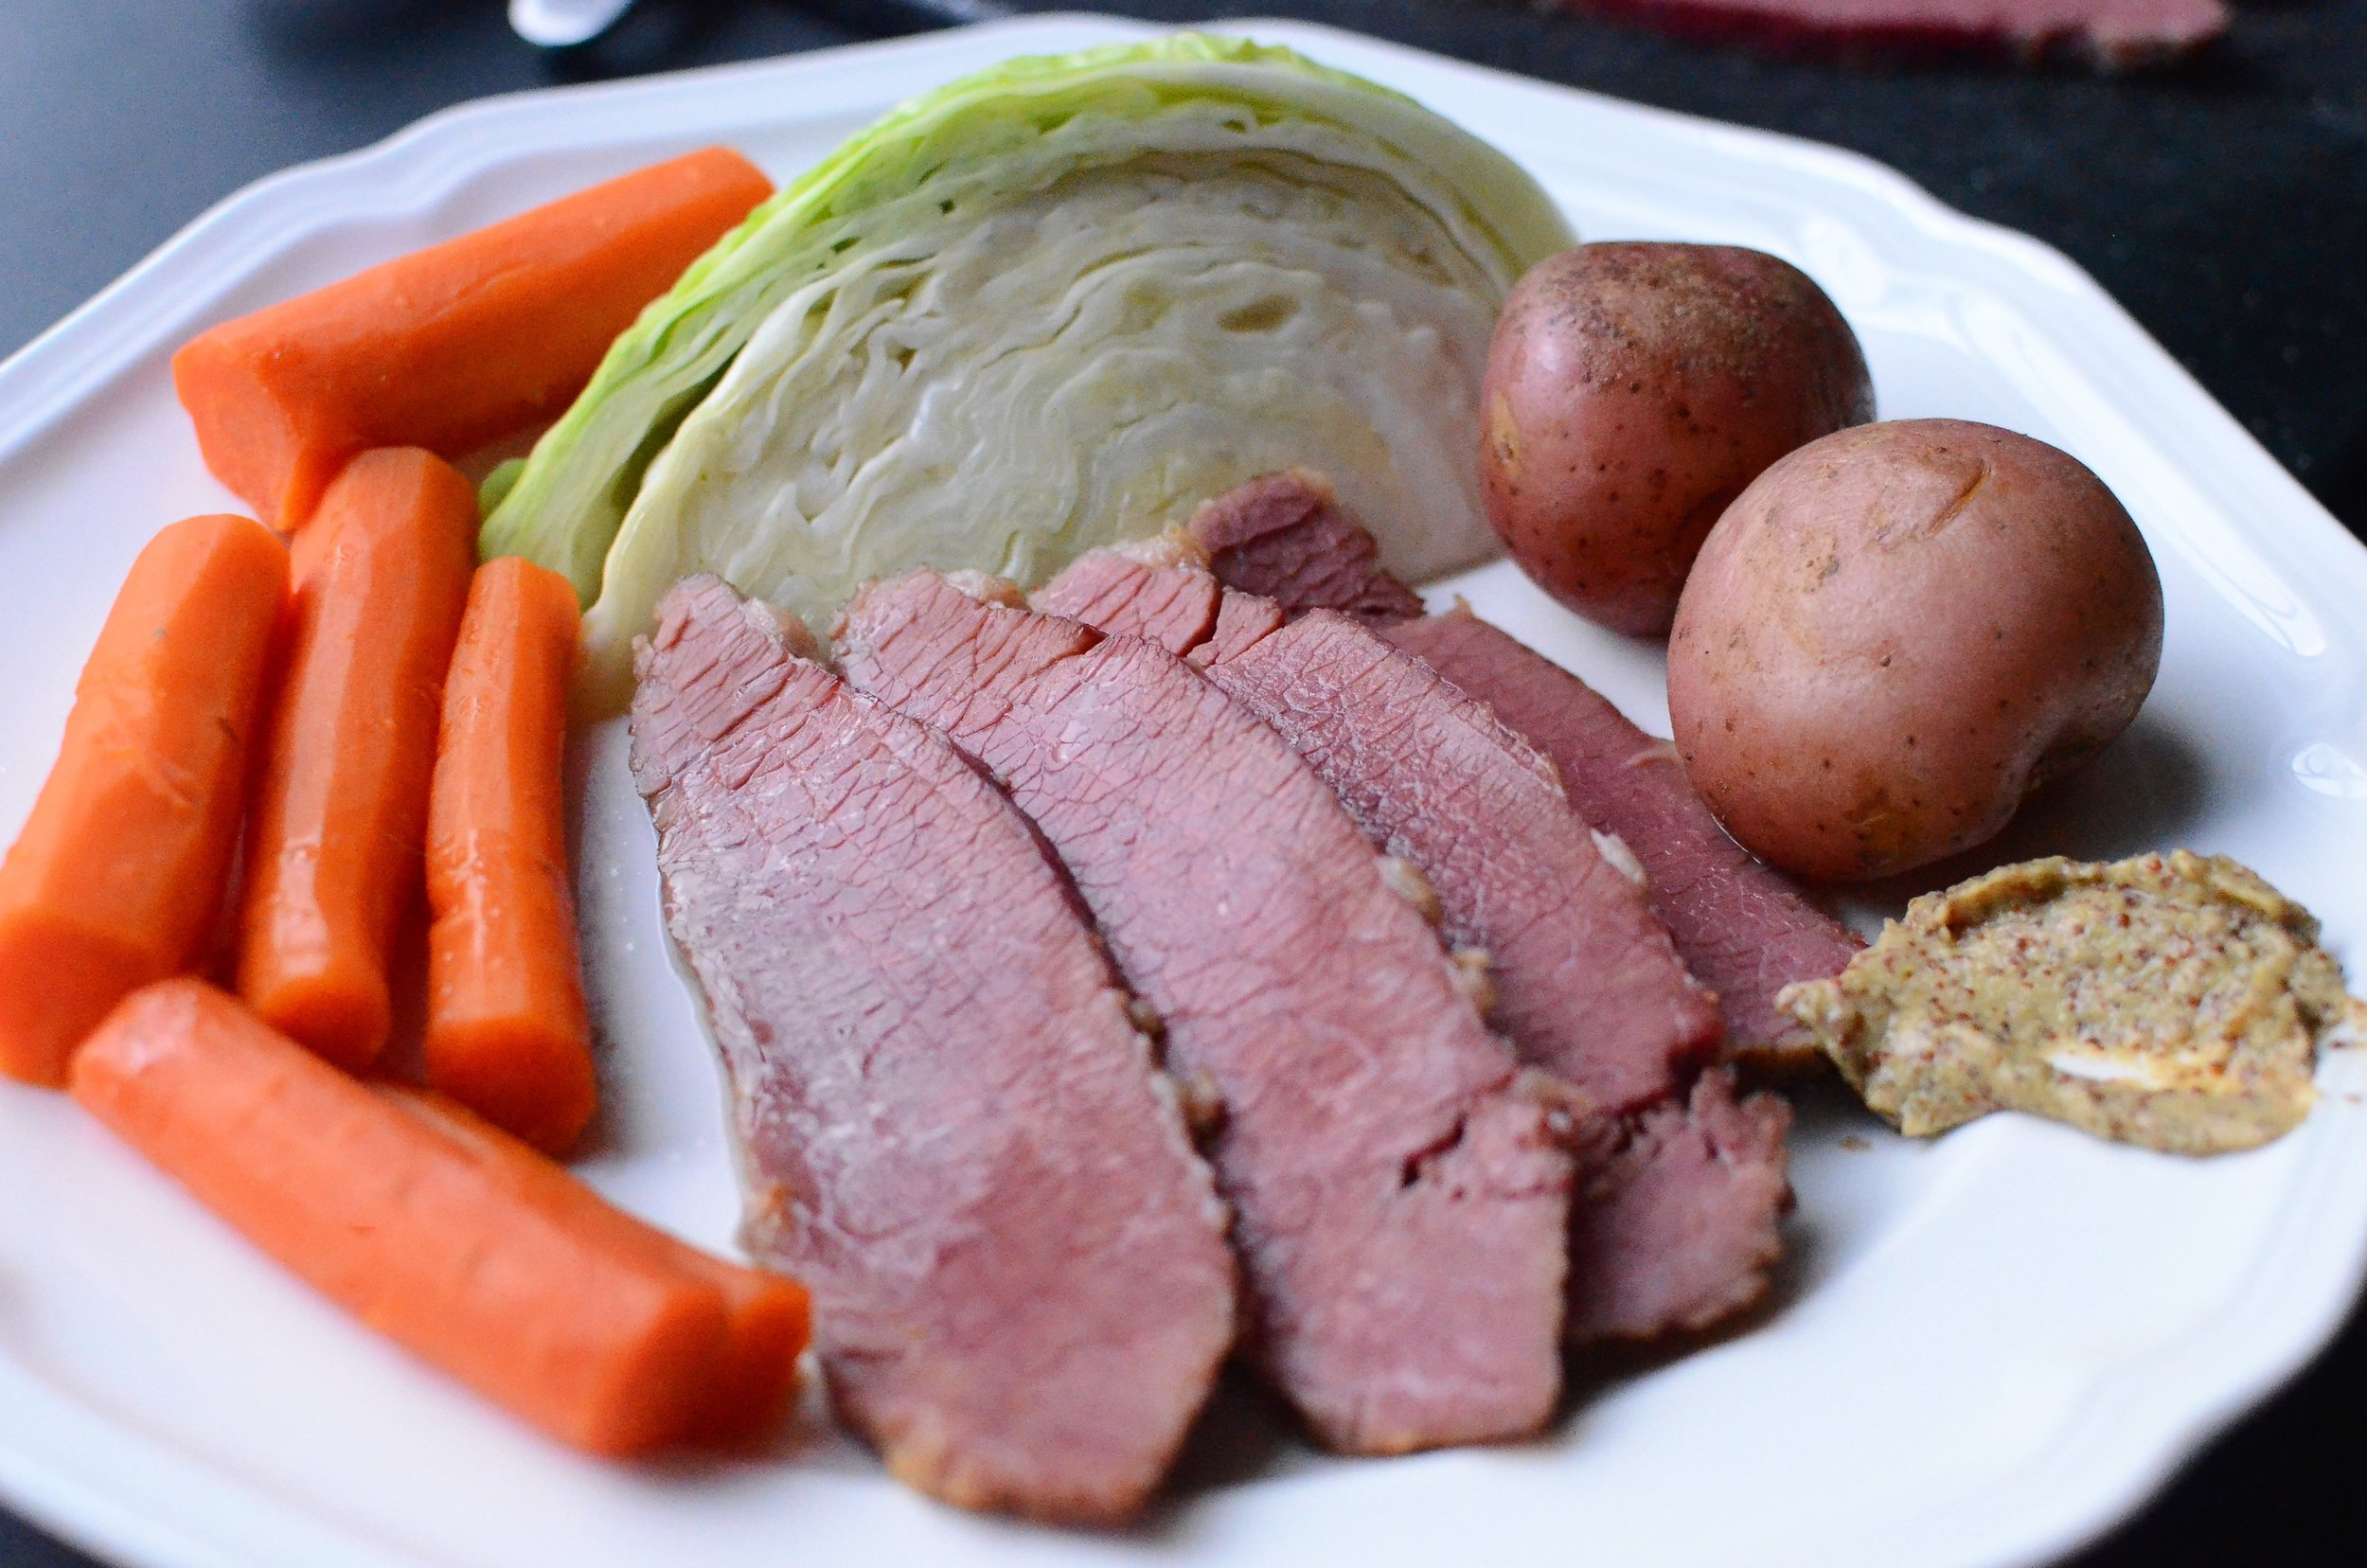 DIY Corned Beef - ButterYum. How to make corned beef at home. diy corned beef recipe. can you make corned beef at home?